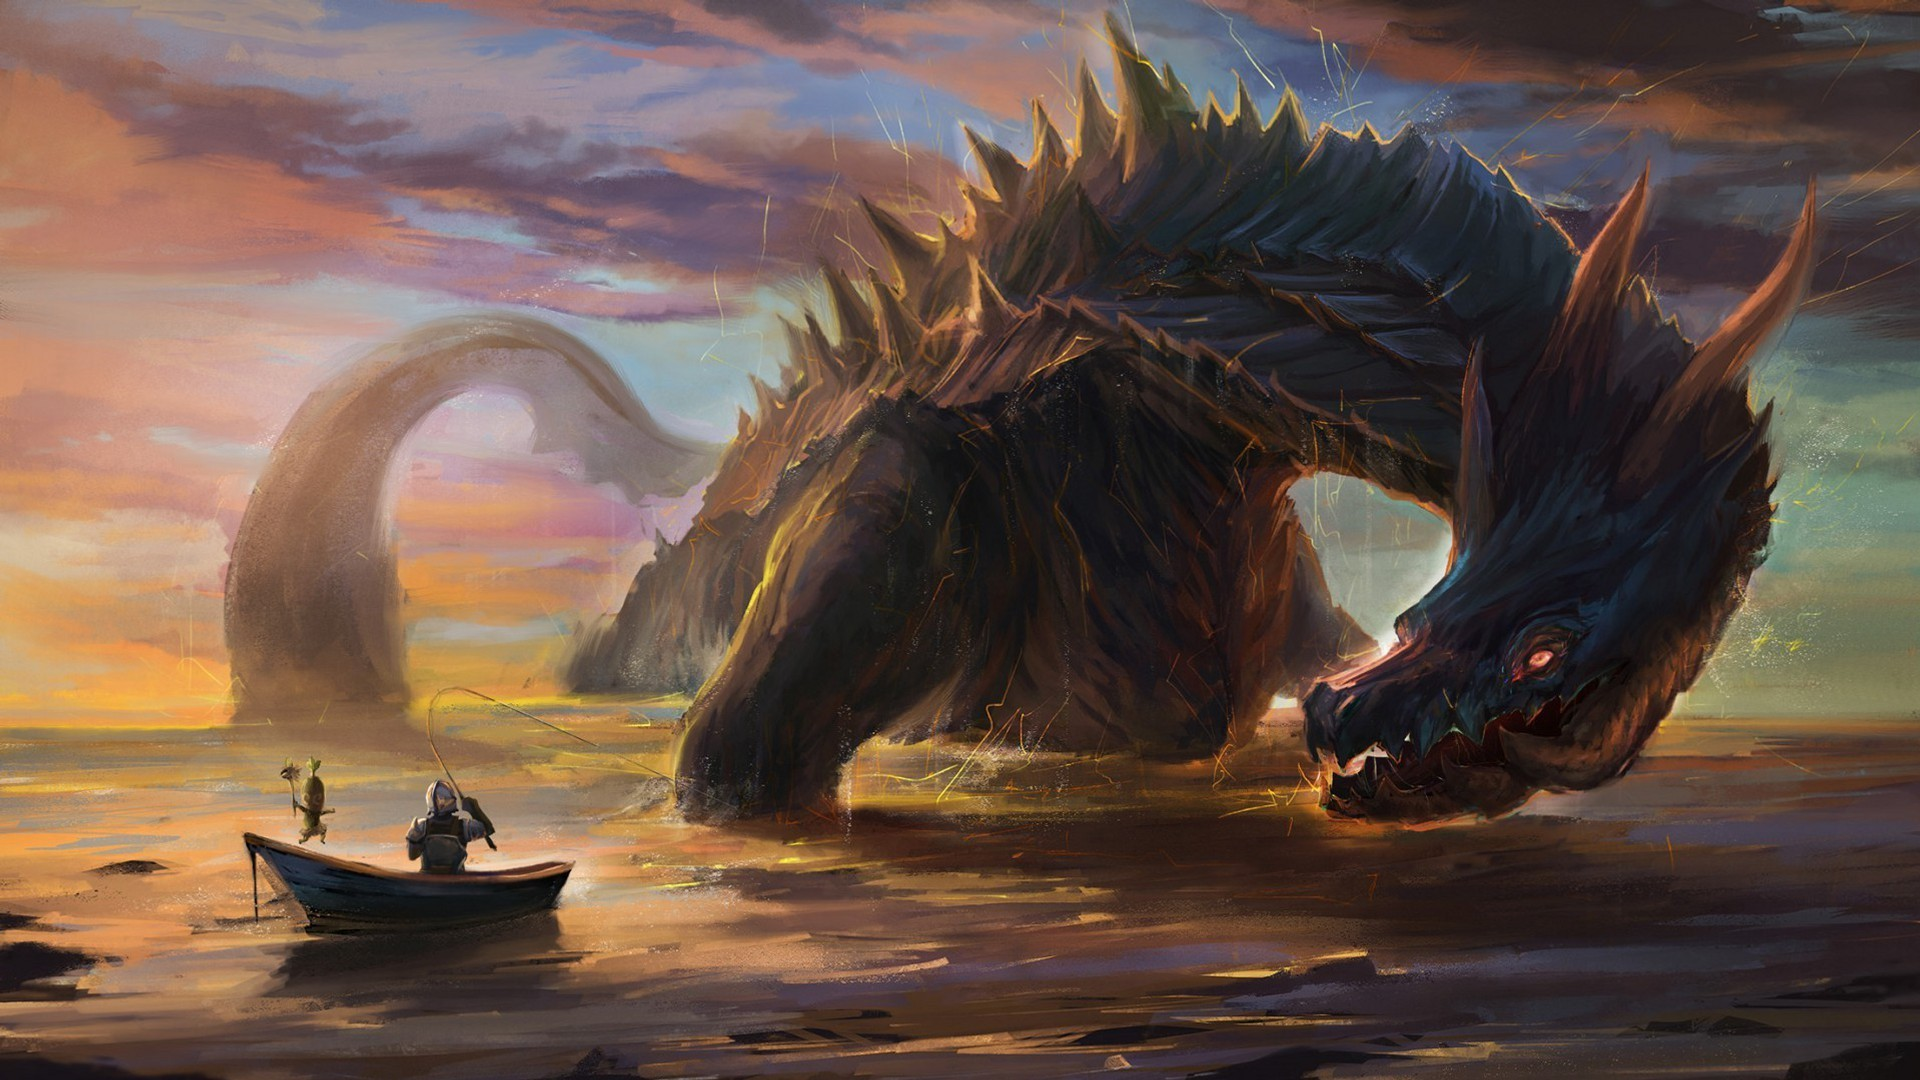 Badass Dragon Wallpapers Full HD with High Definition Wallpaper  px 379.32 KB Other Dark Backgrounds